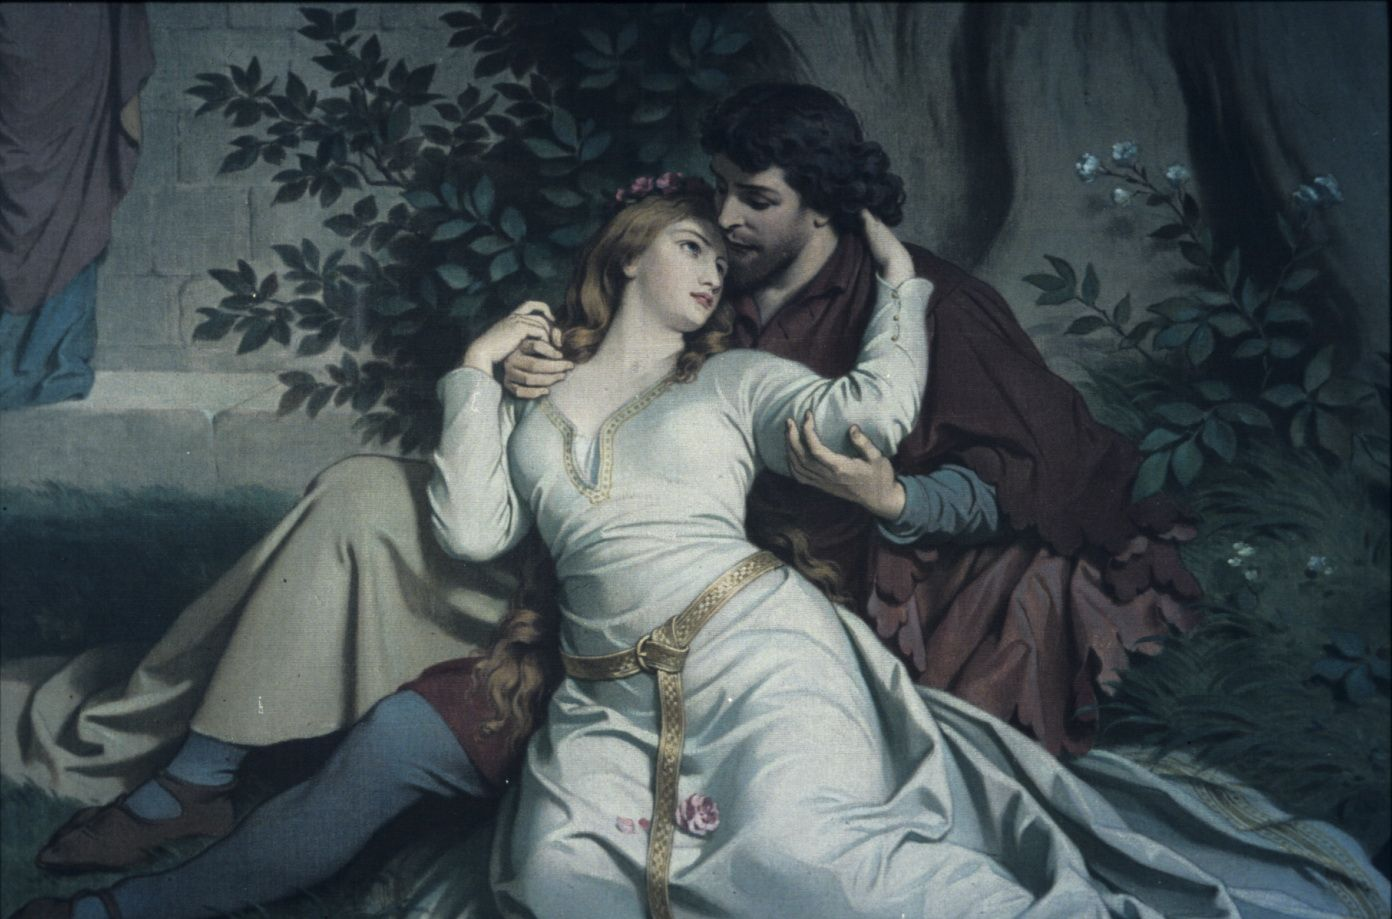 August Spiess - Tristan and Isolde, 1881